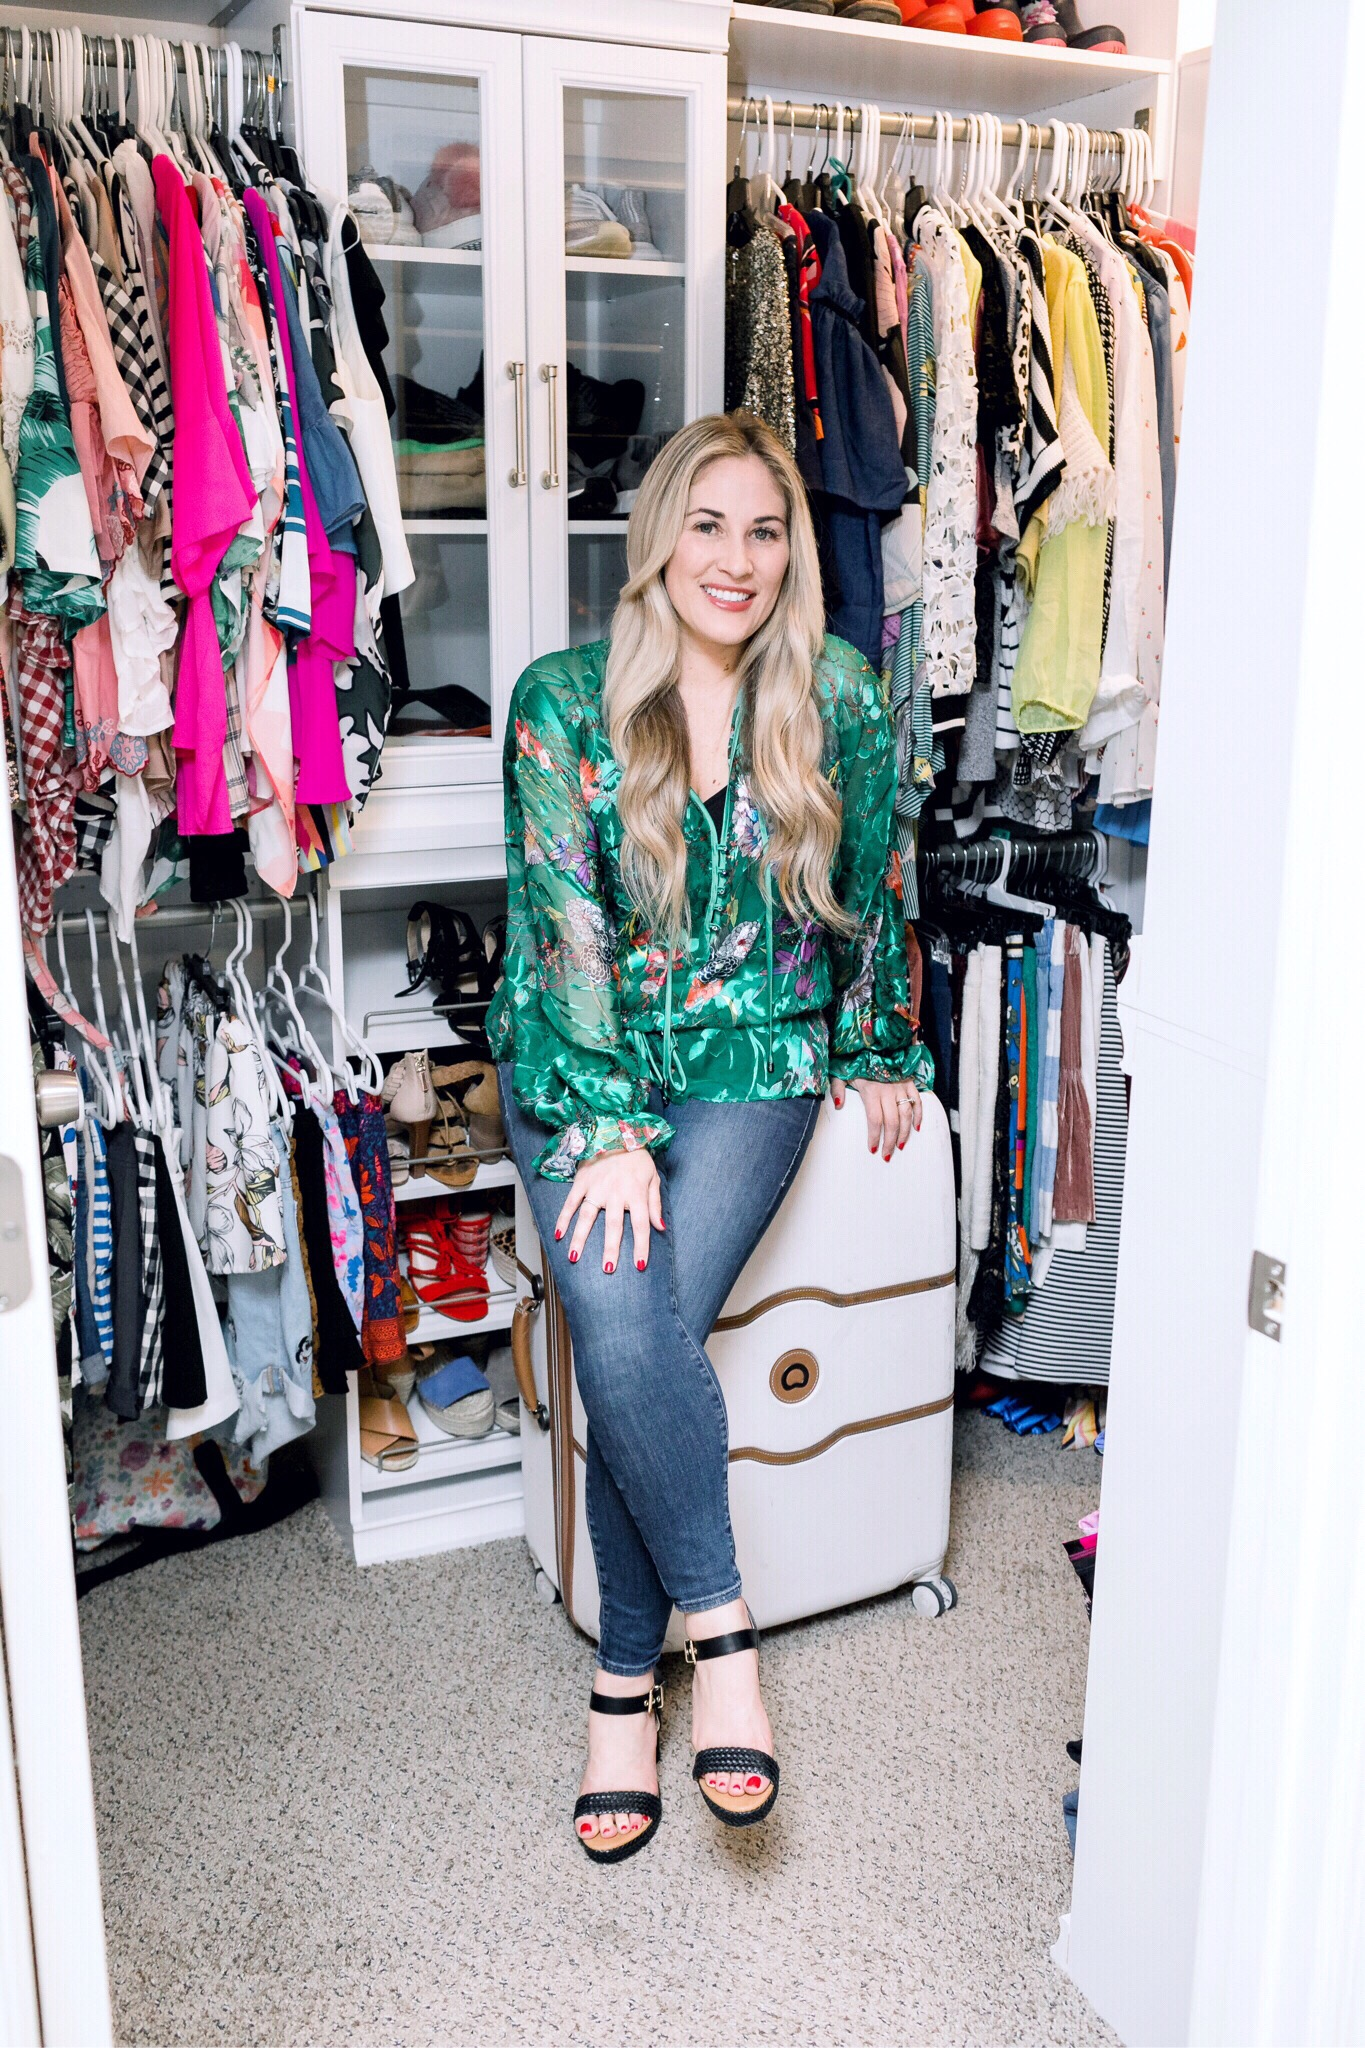 ClosetMaid Modular Closet System review featured by top US life and style blog, Walking in Memphis in High Heels.